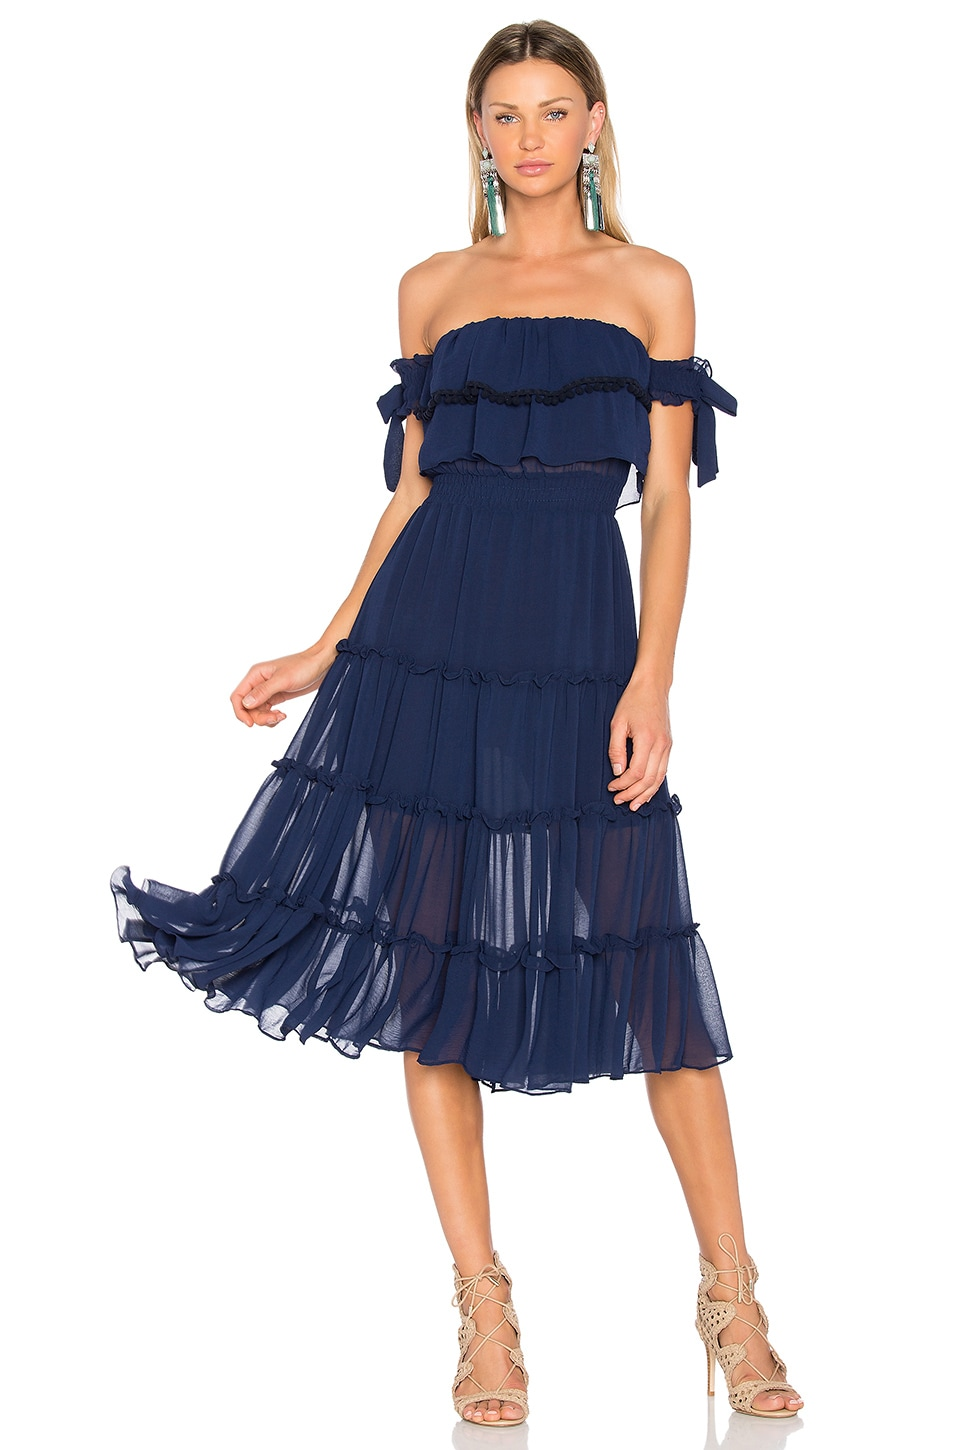 MISA Los Angeles Micaela Dress in Navy